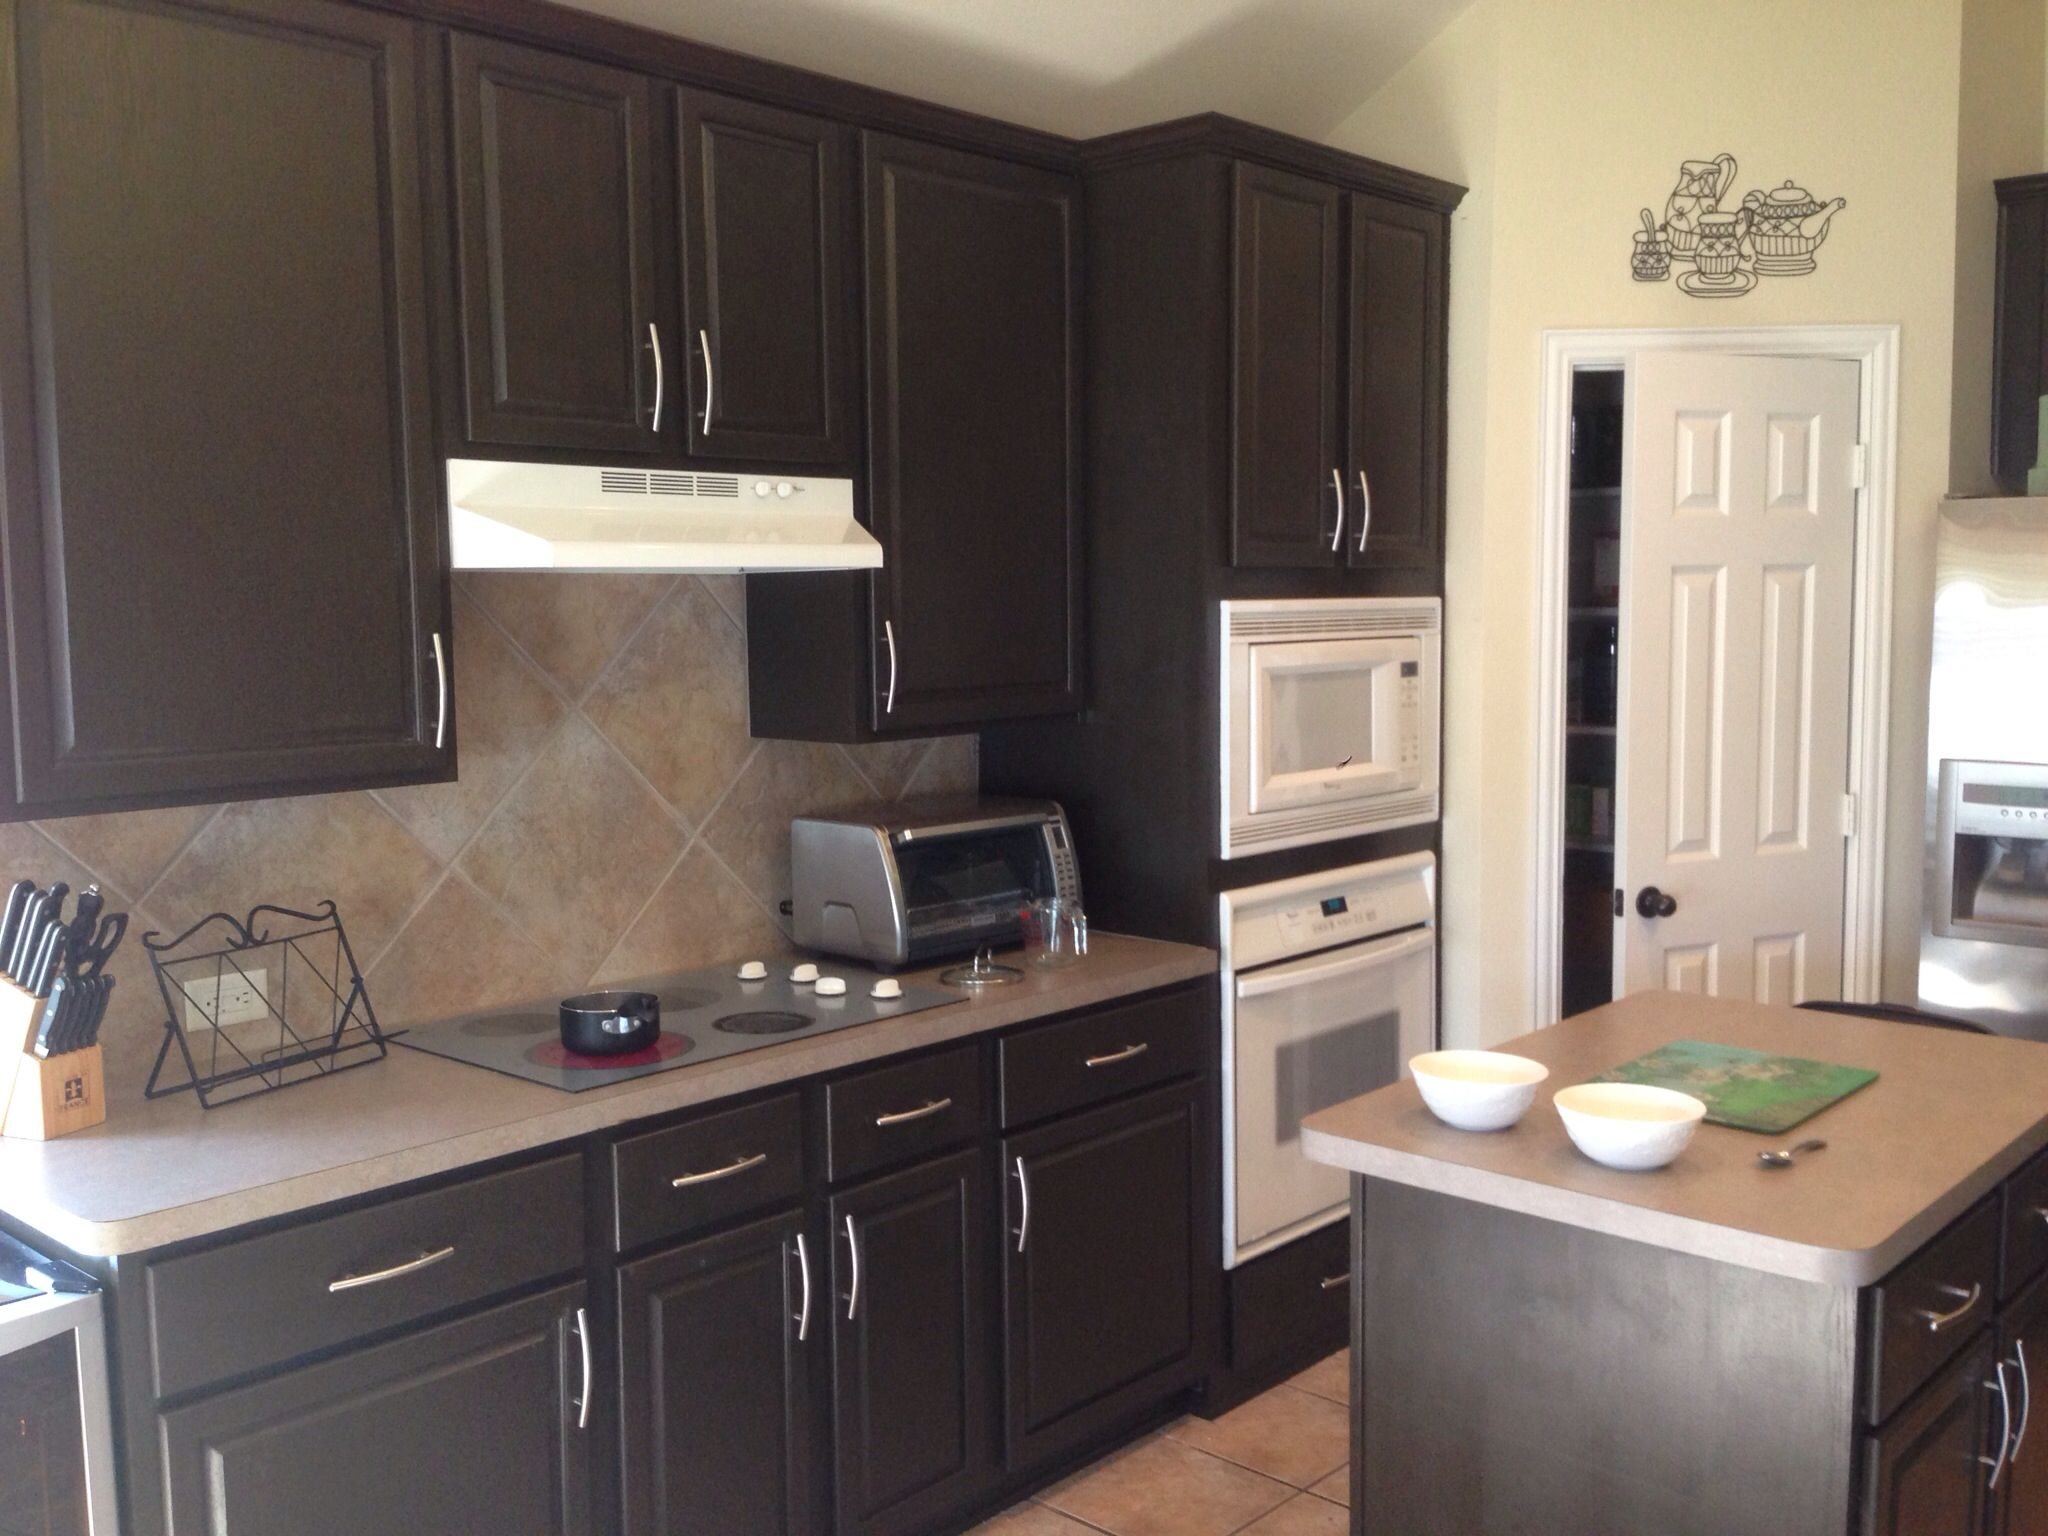 coffee color kitchen cabinets island cabinet base espresso beans by behr we painted our lightly stained oak